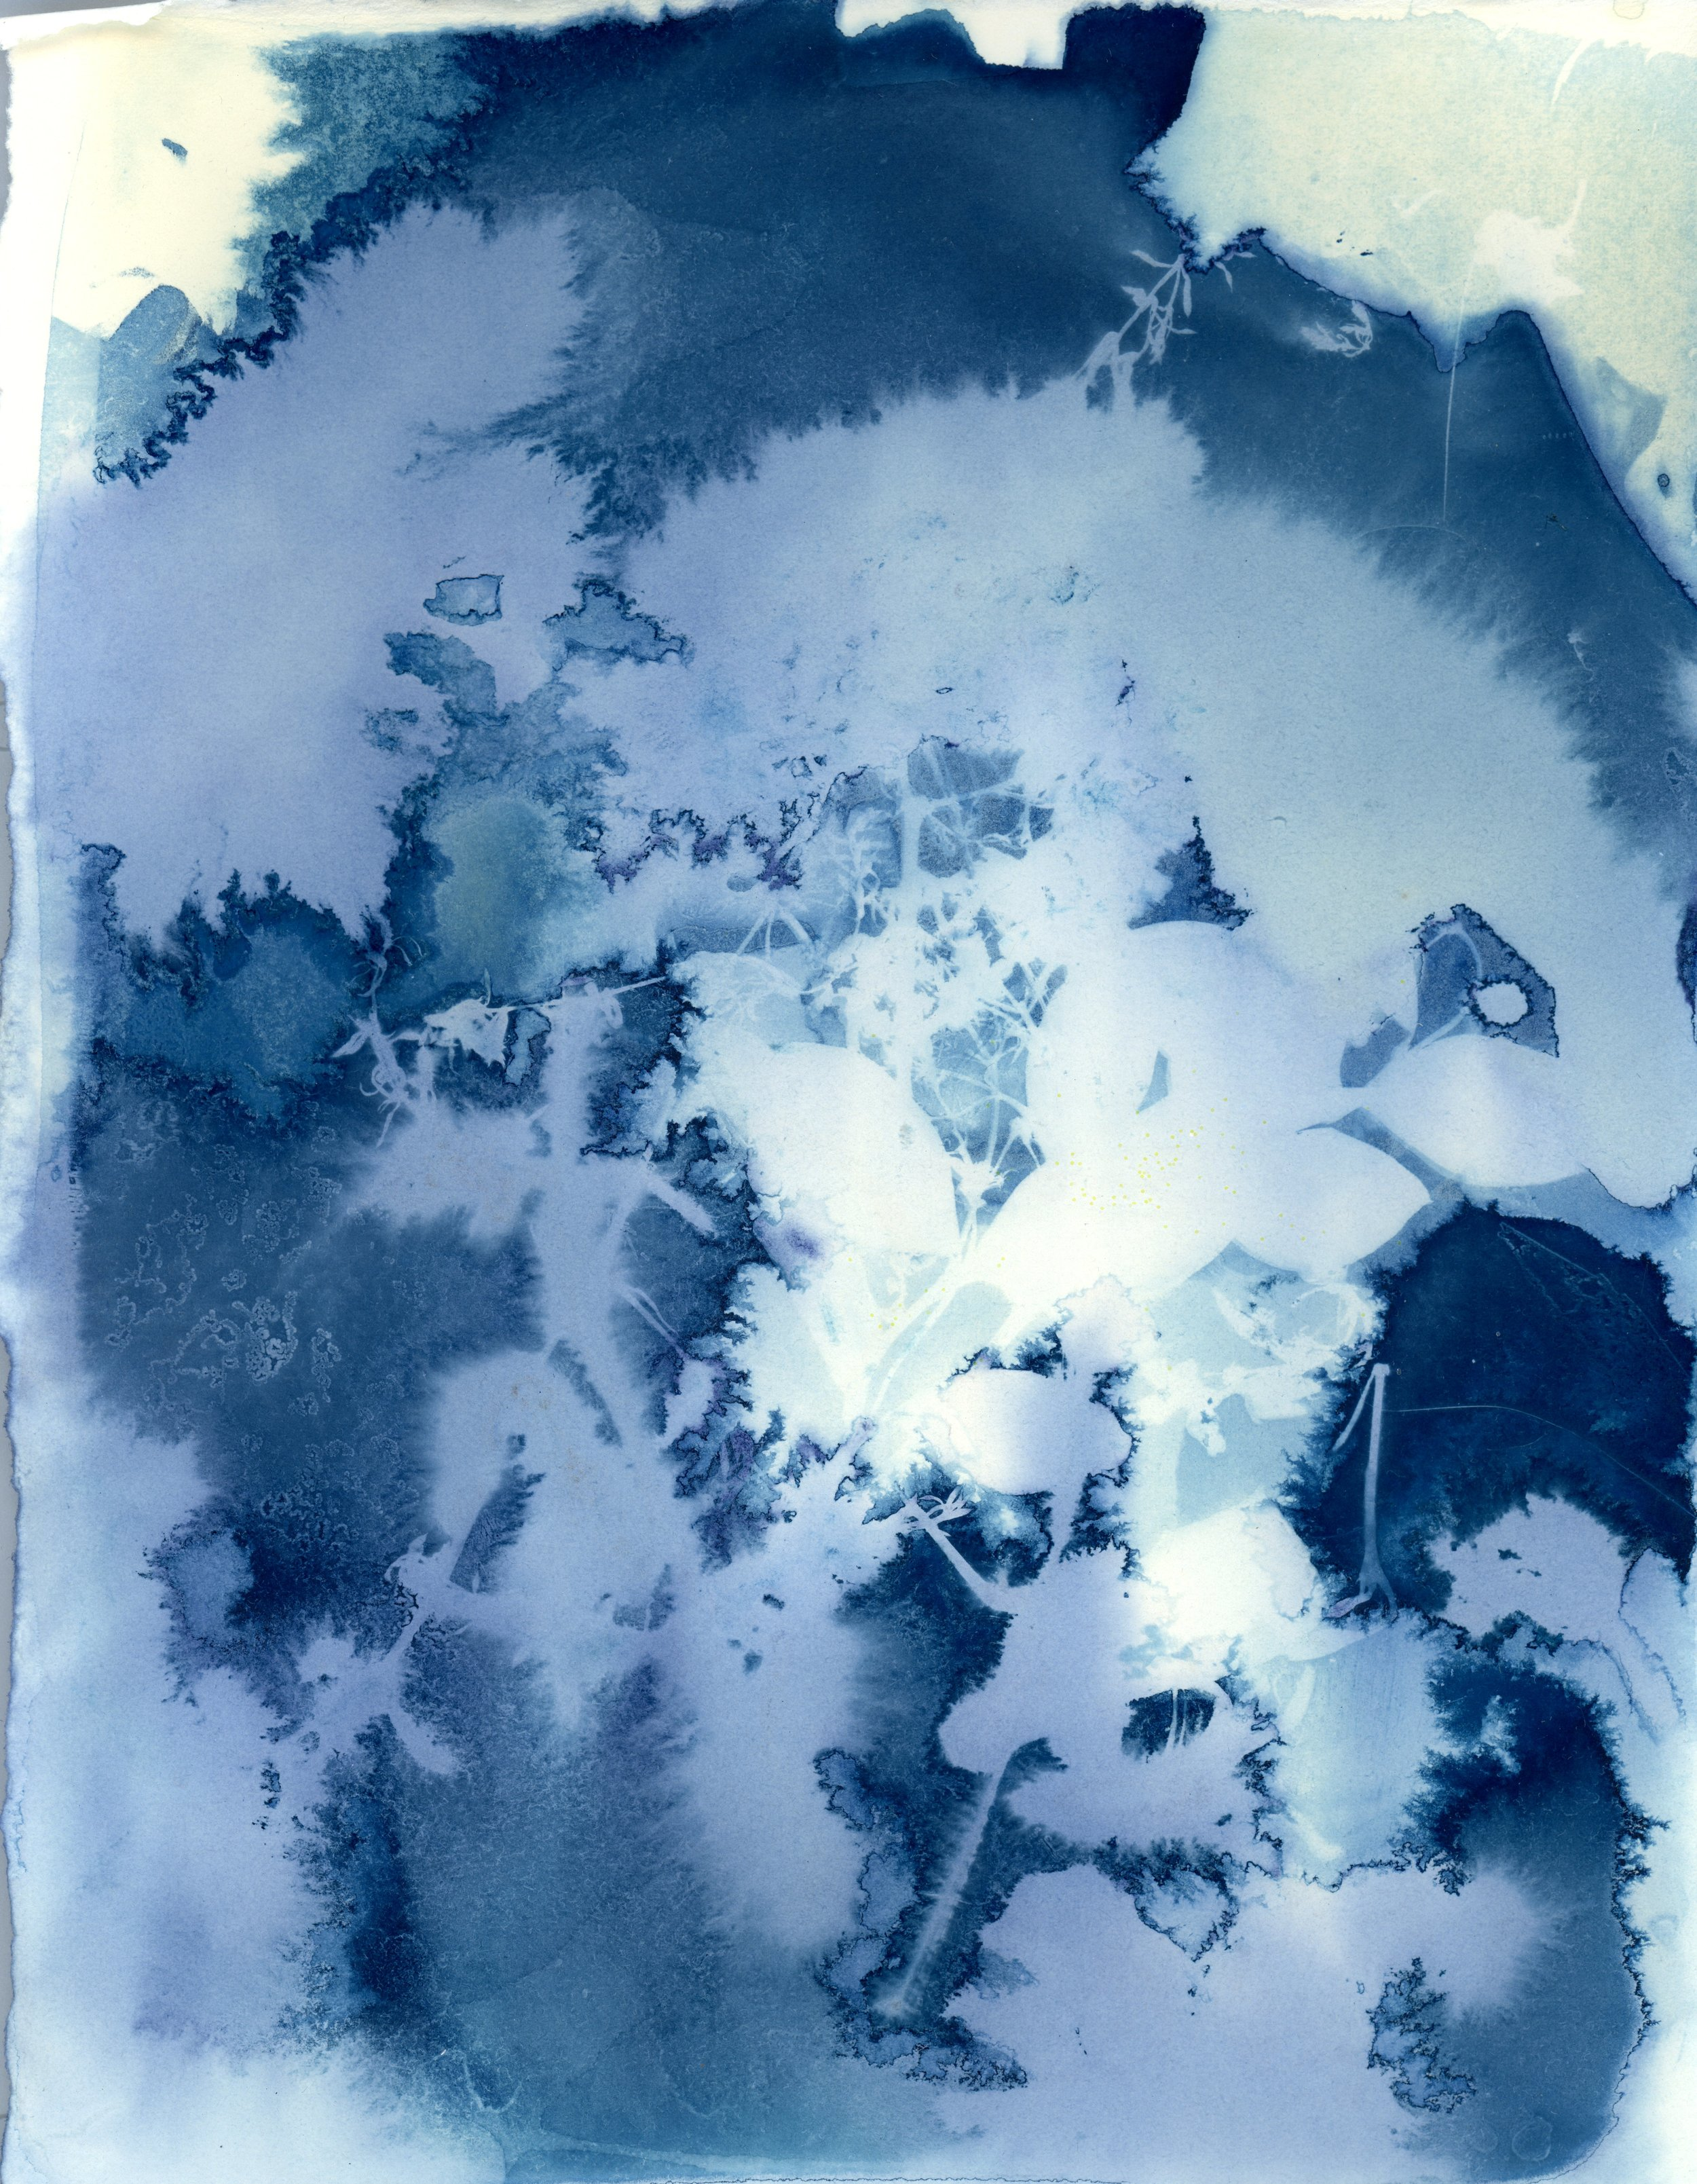 Mixed cyanotype001.jpg